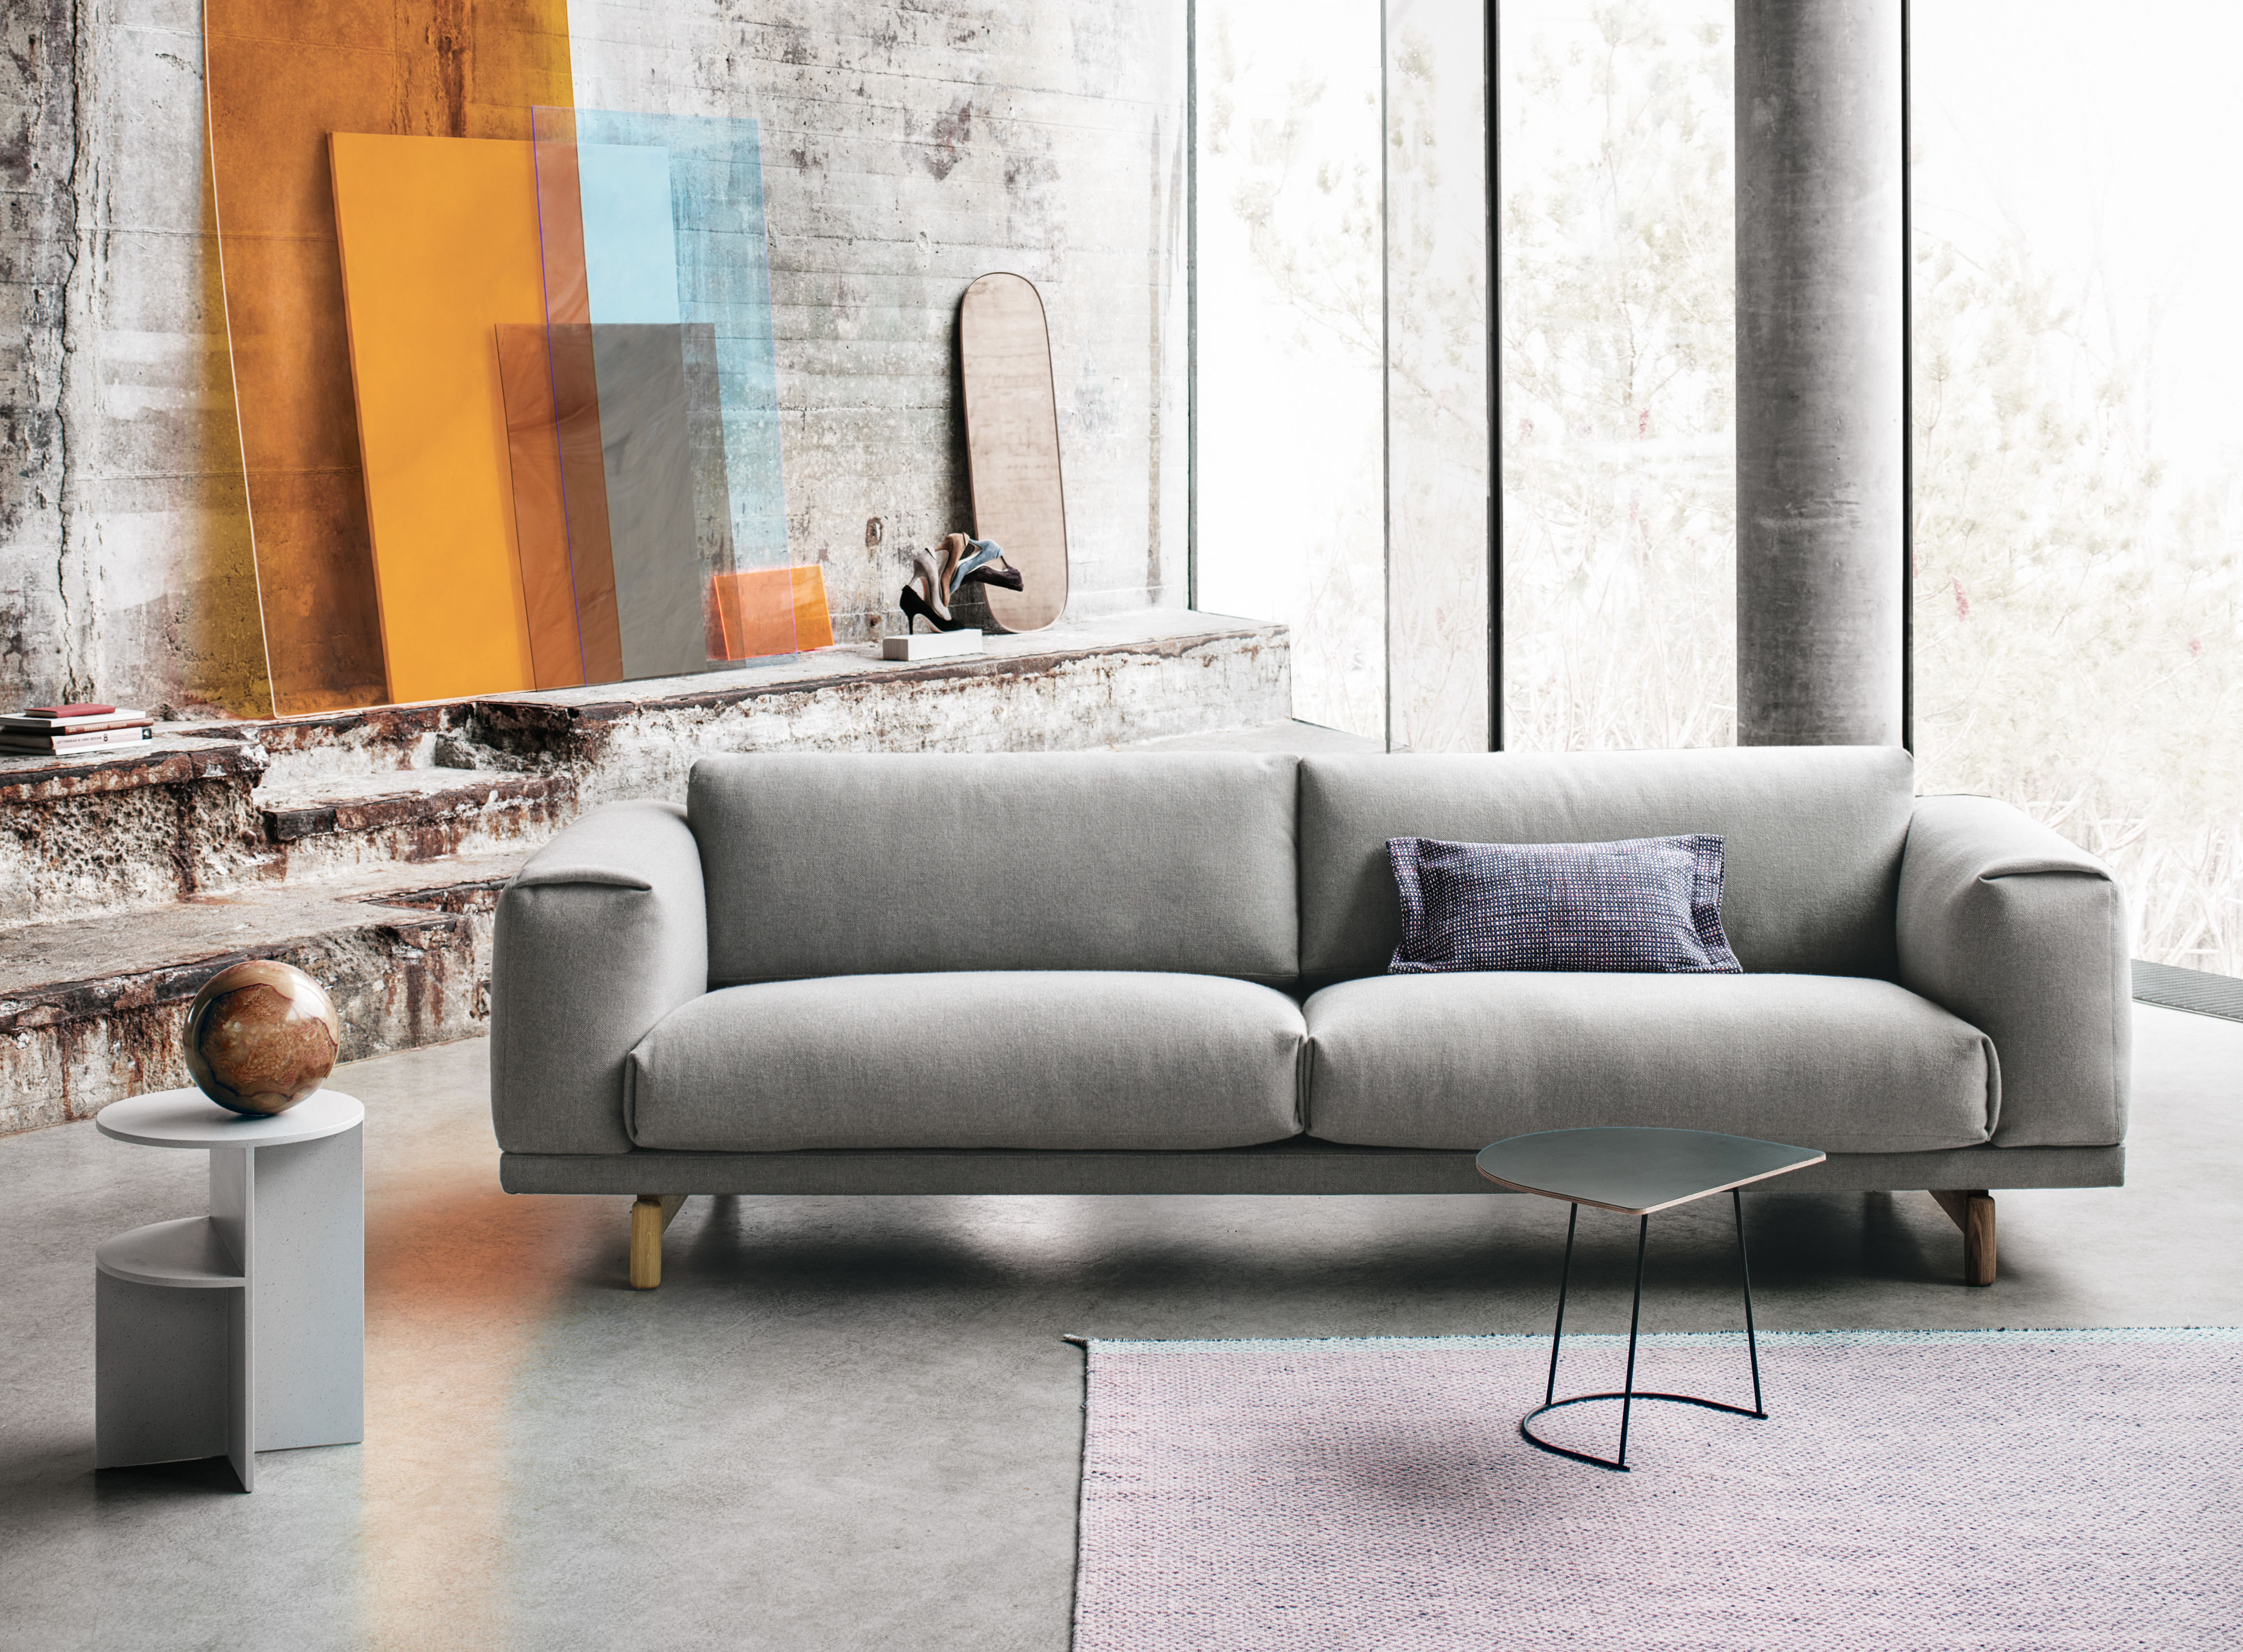 The Japandi inspired Rest sofa by Muuto